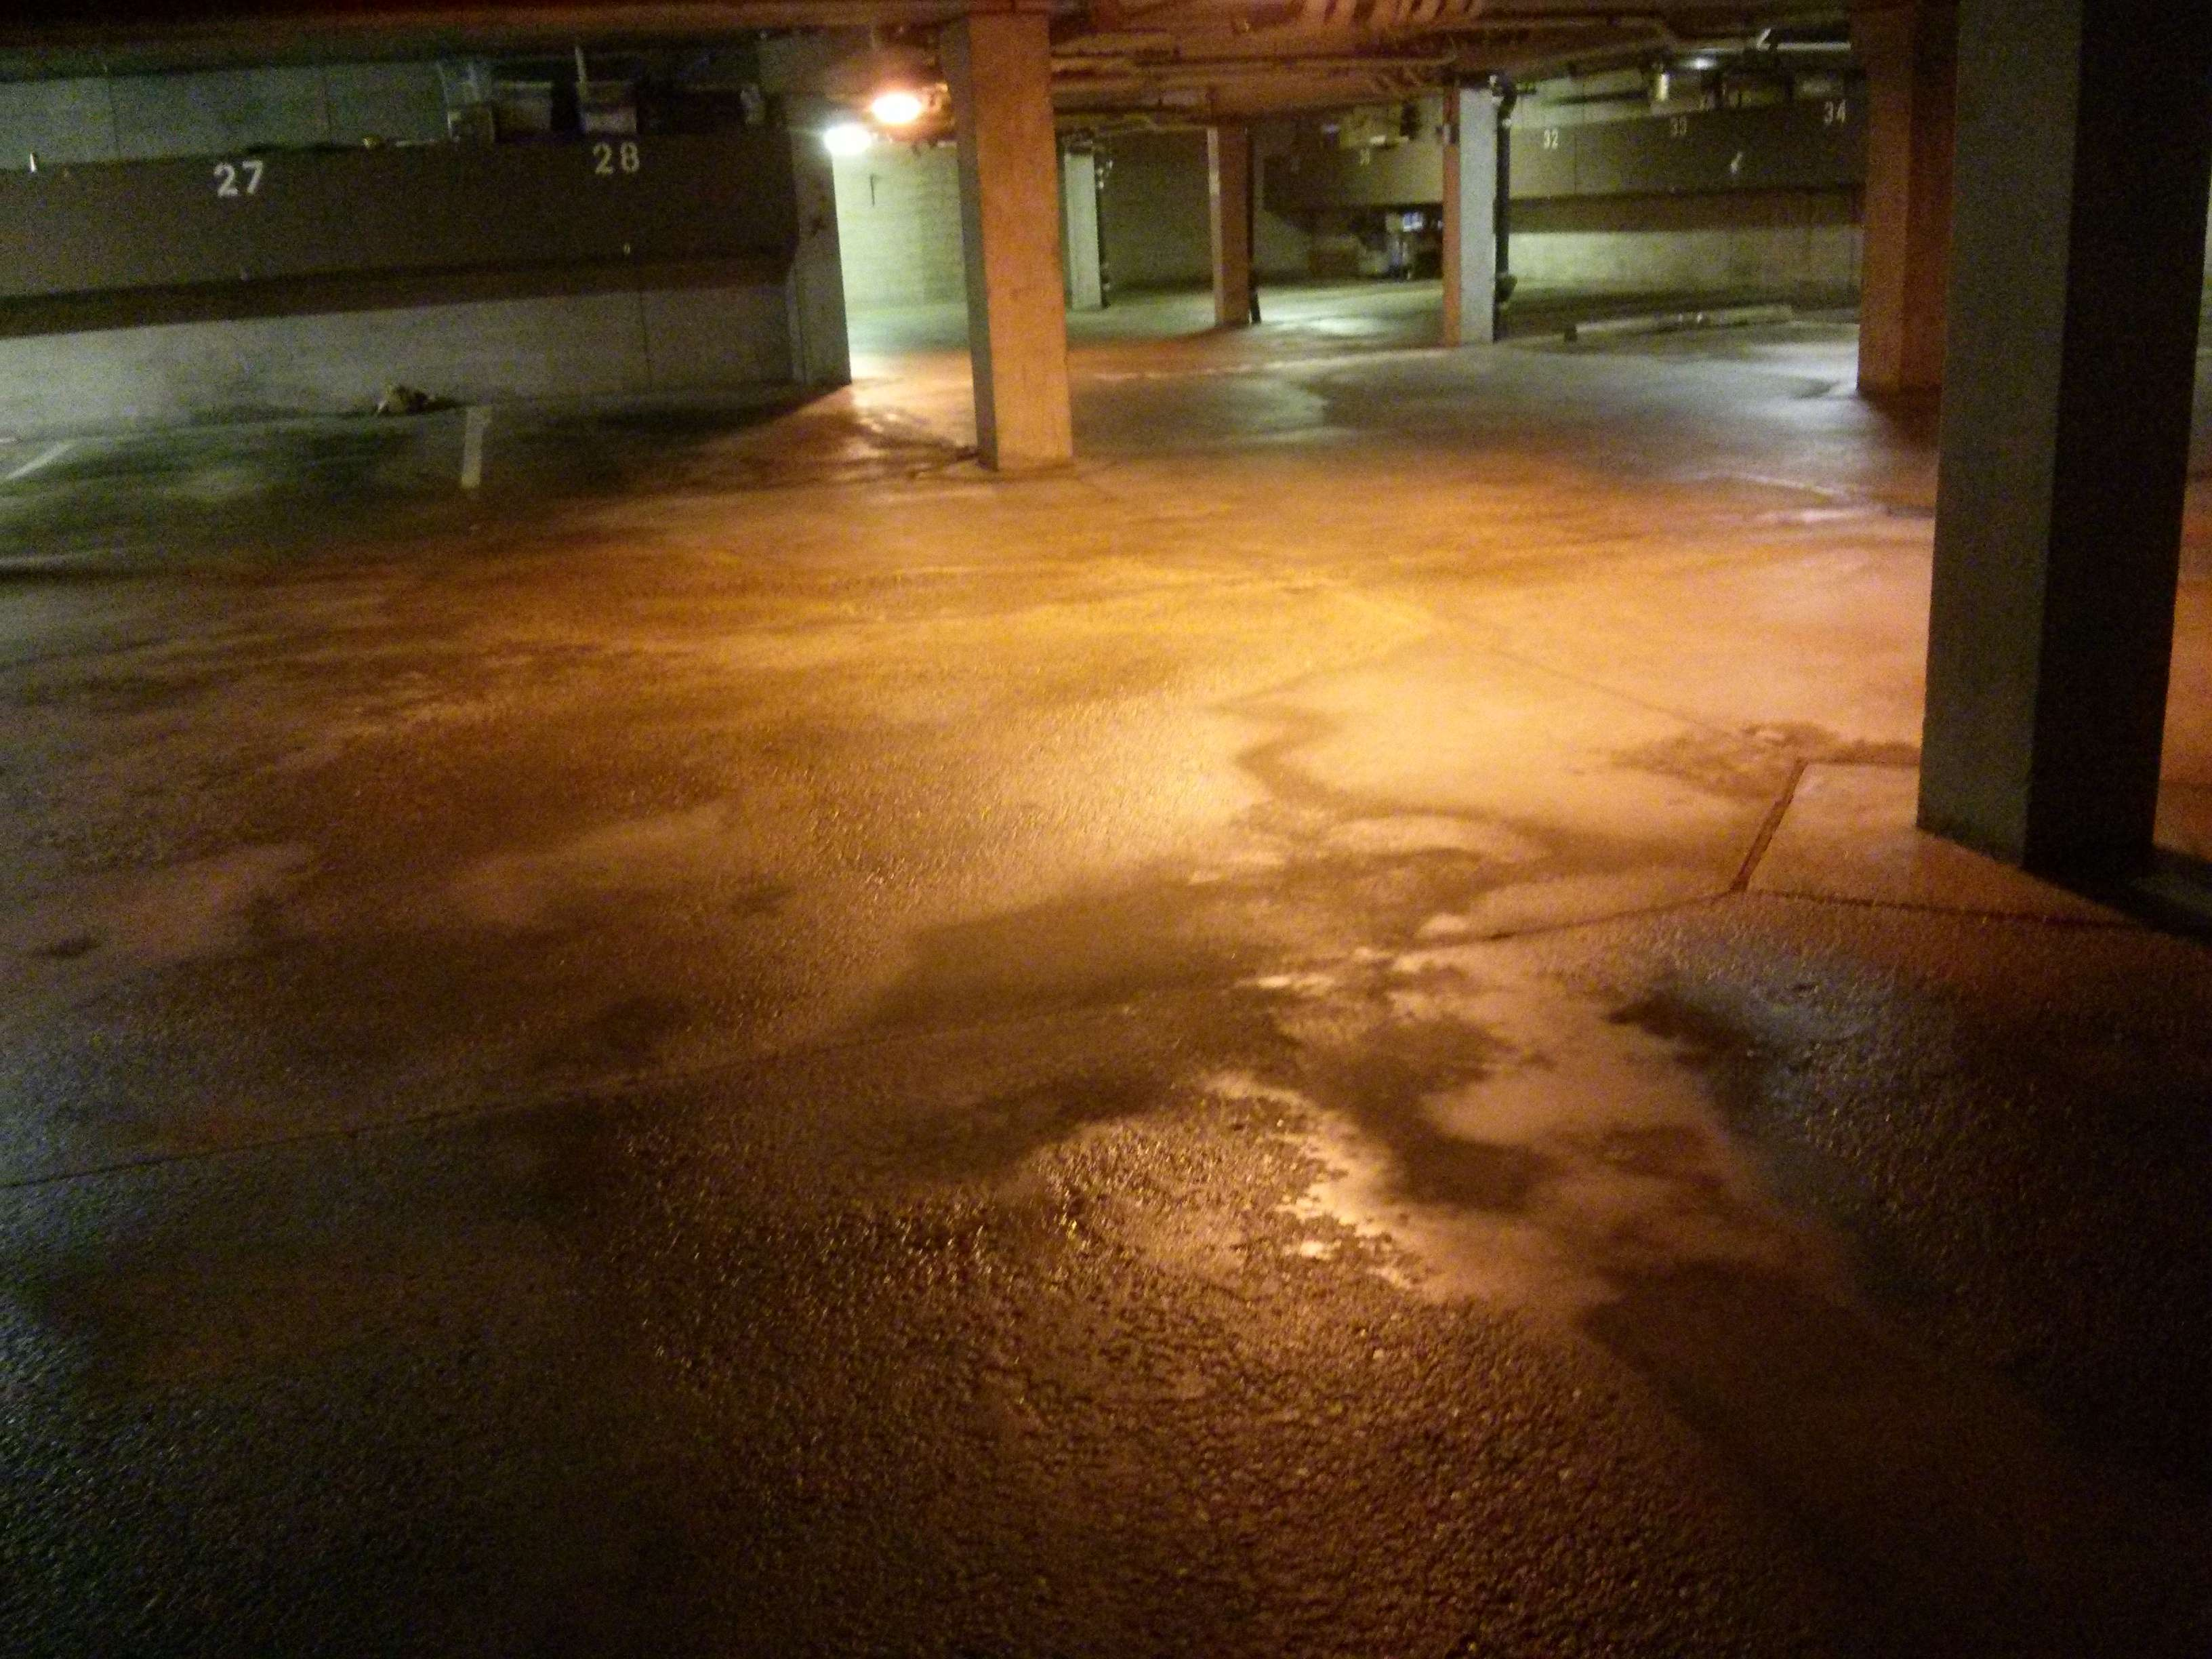 Parking Garage Pressure Wash Cleaning Service in St Paul, MN